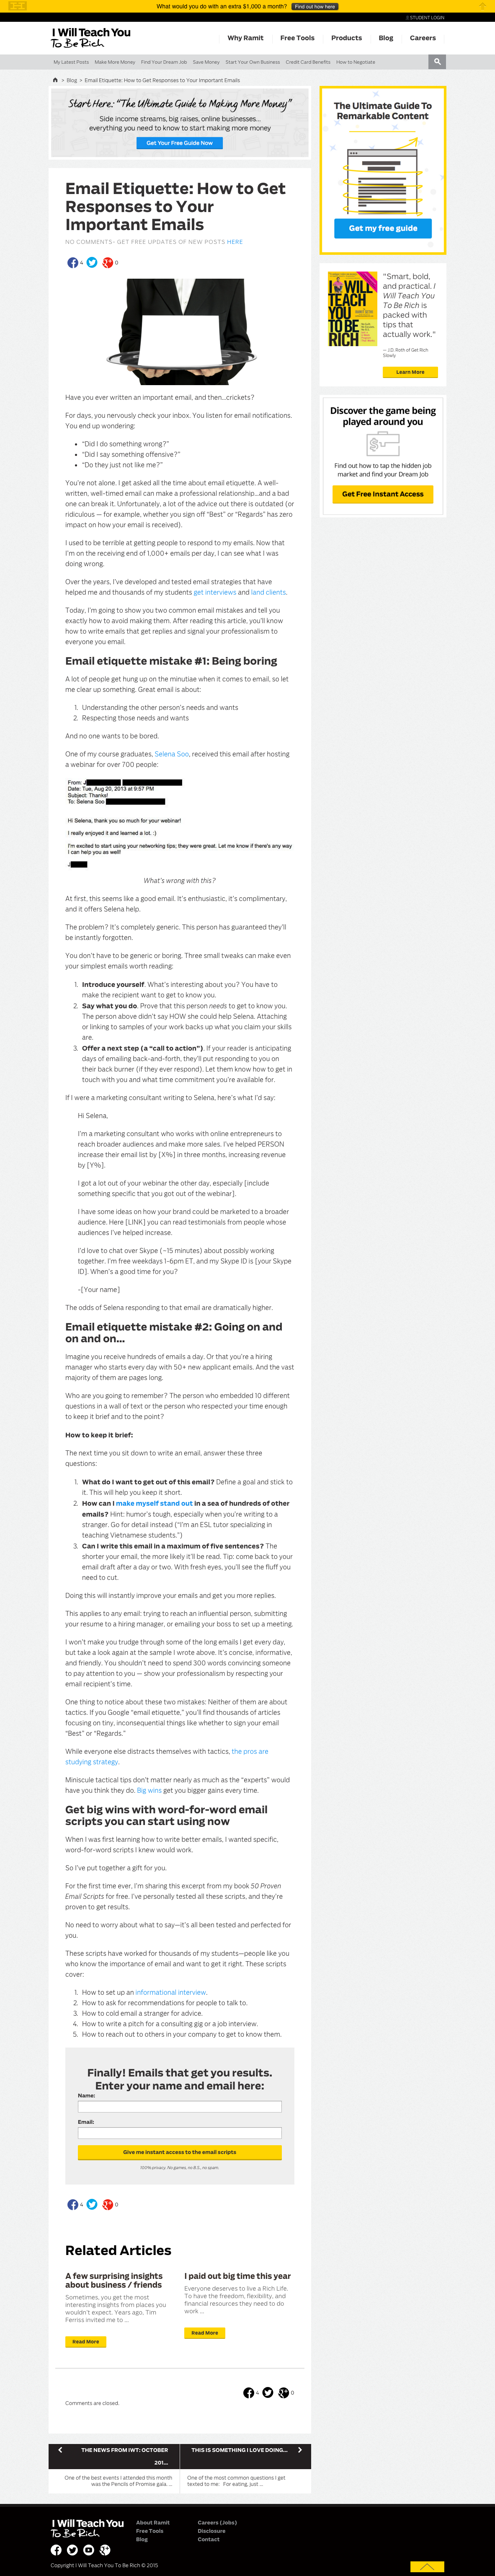 blog posts direct response copywriter the perfect follow up email to send after your interview